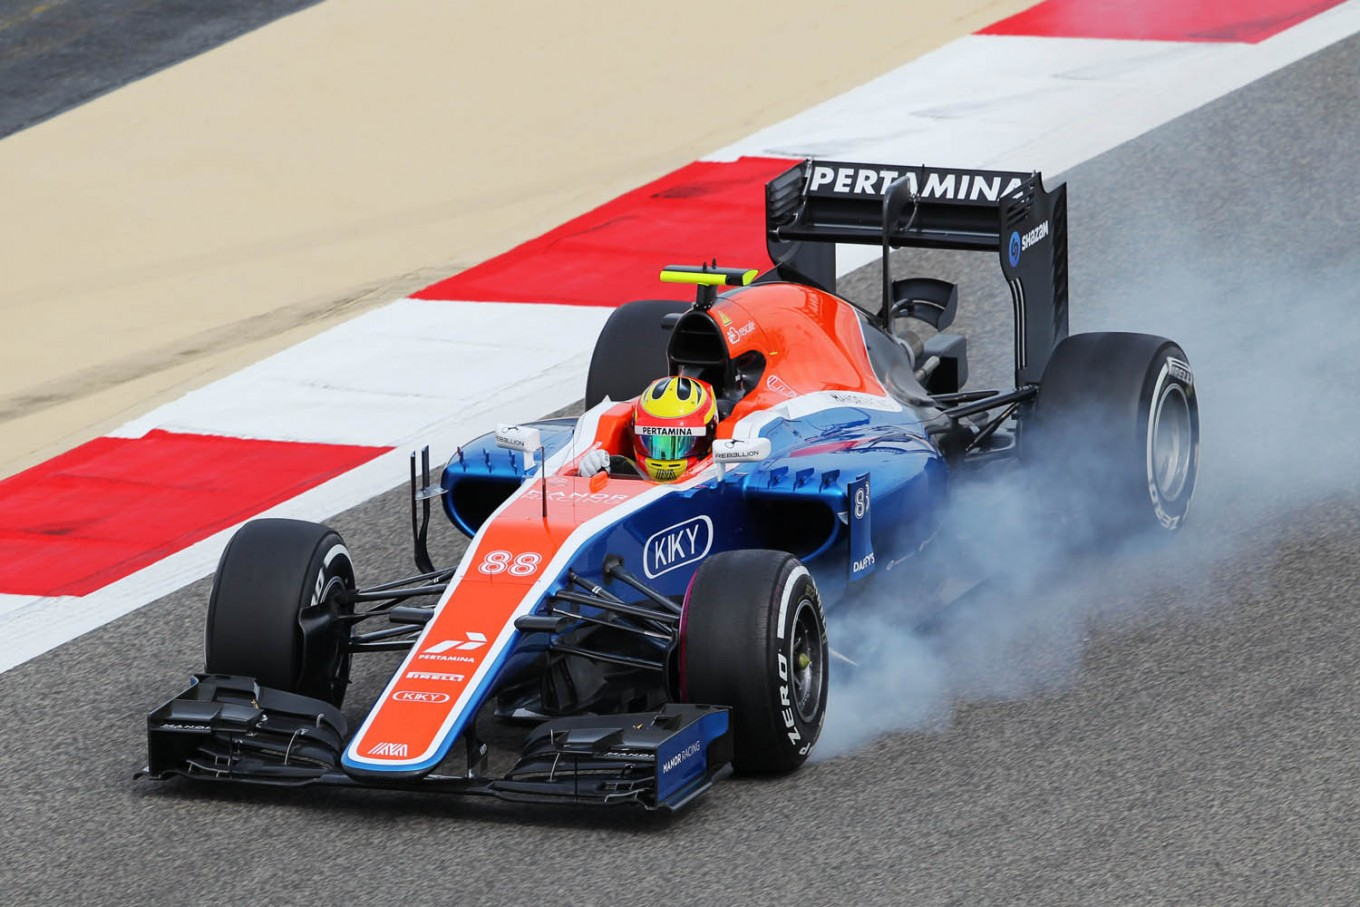 Pertamina quits advertising on Manor after Rio demoted